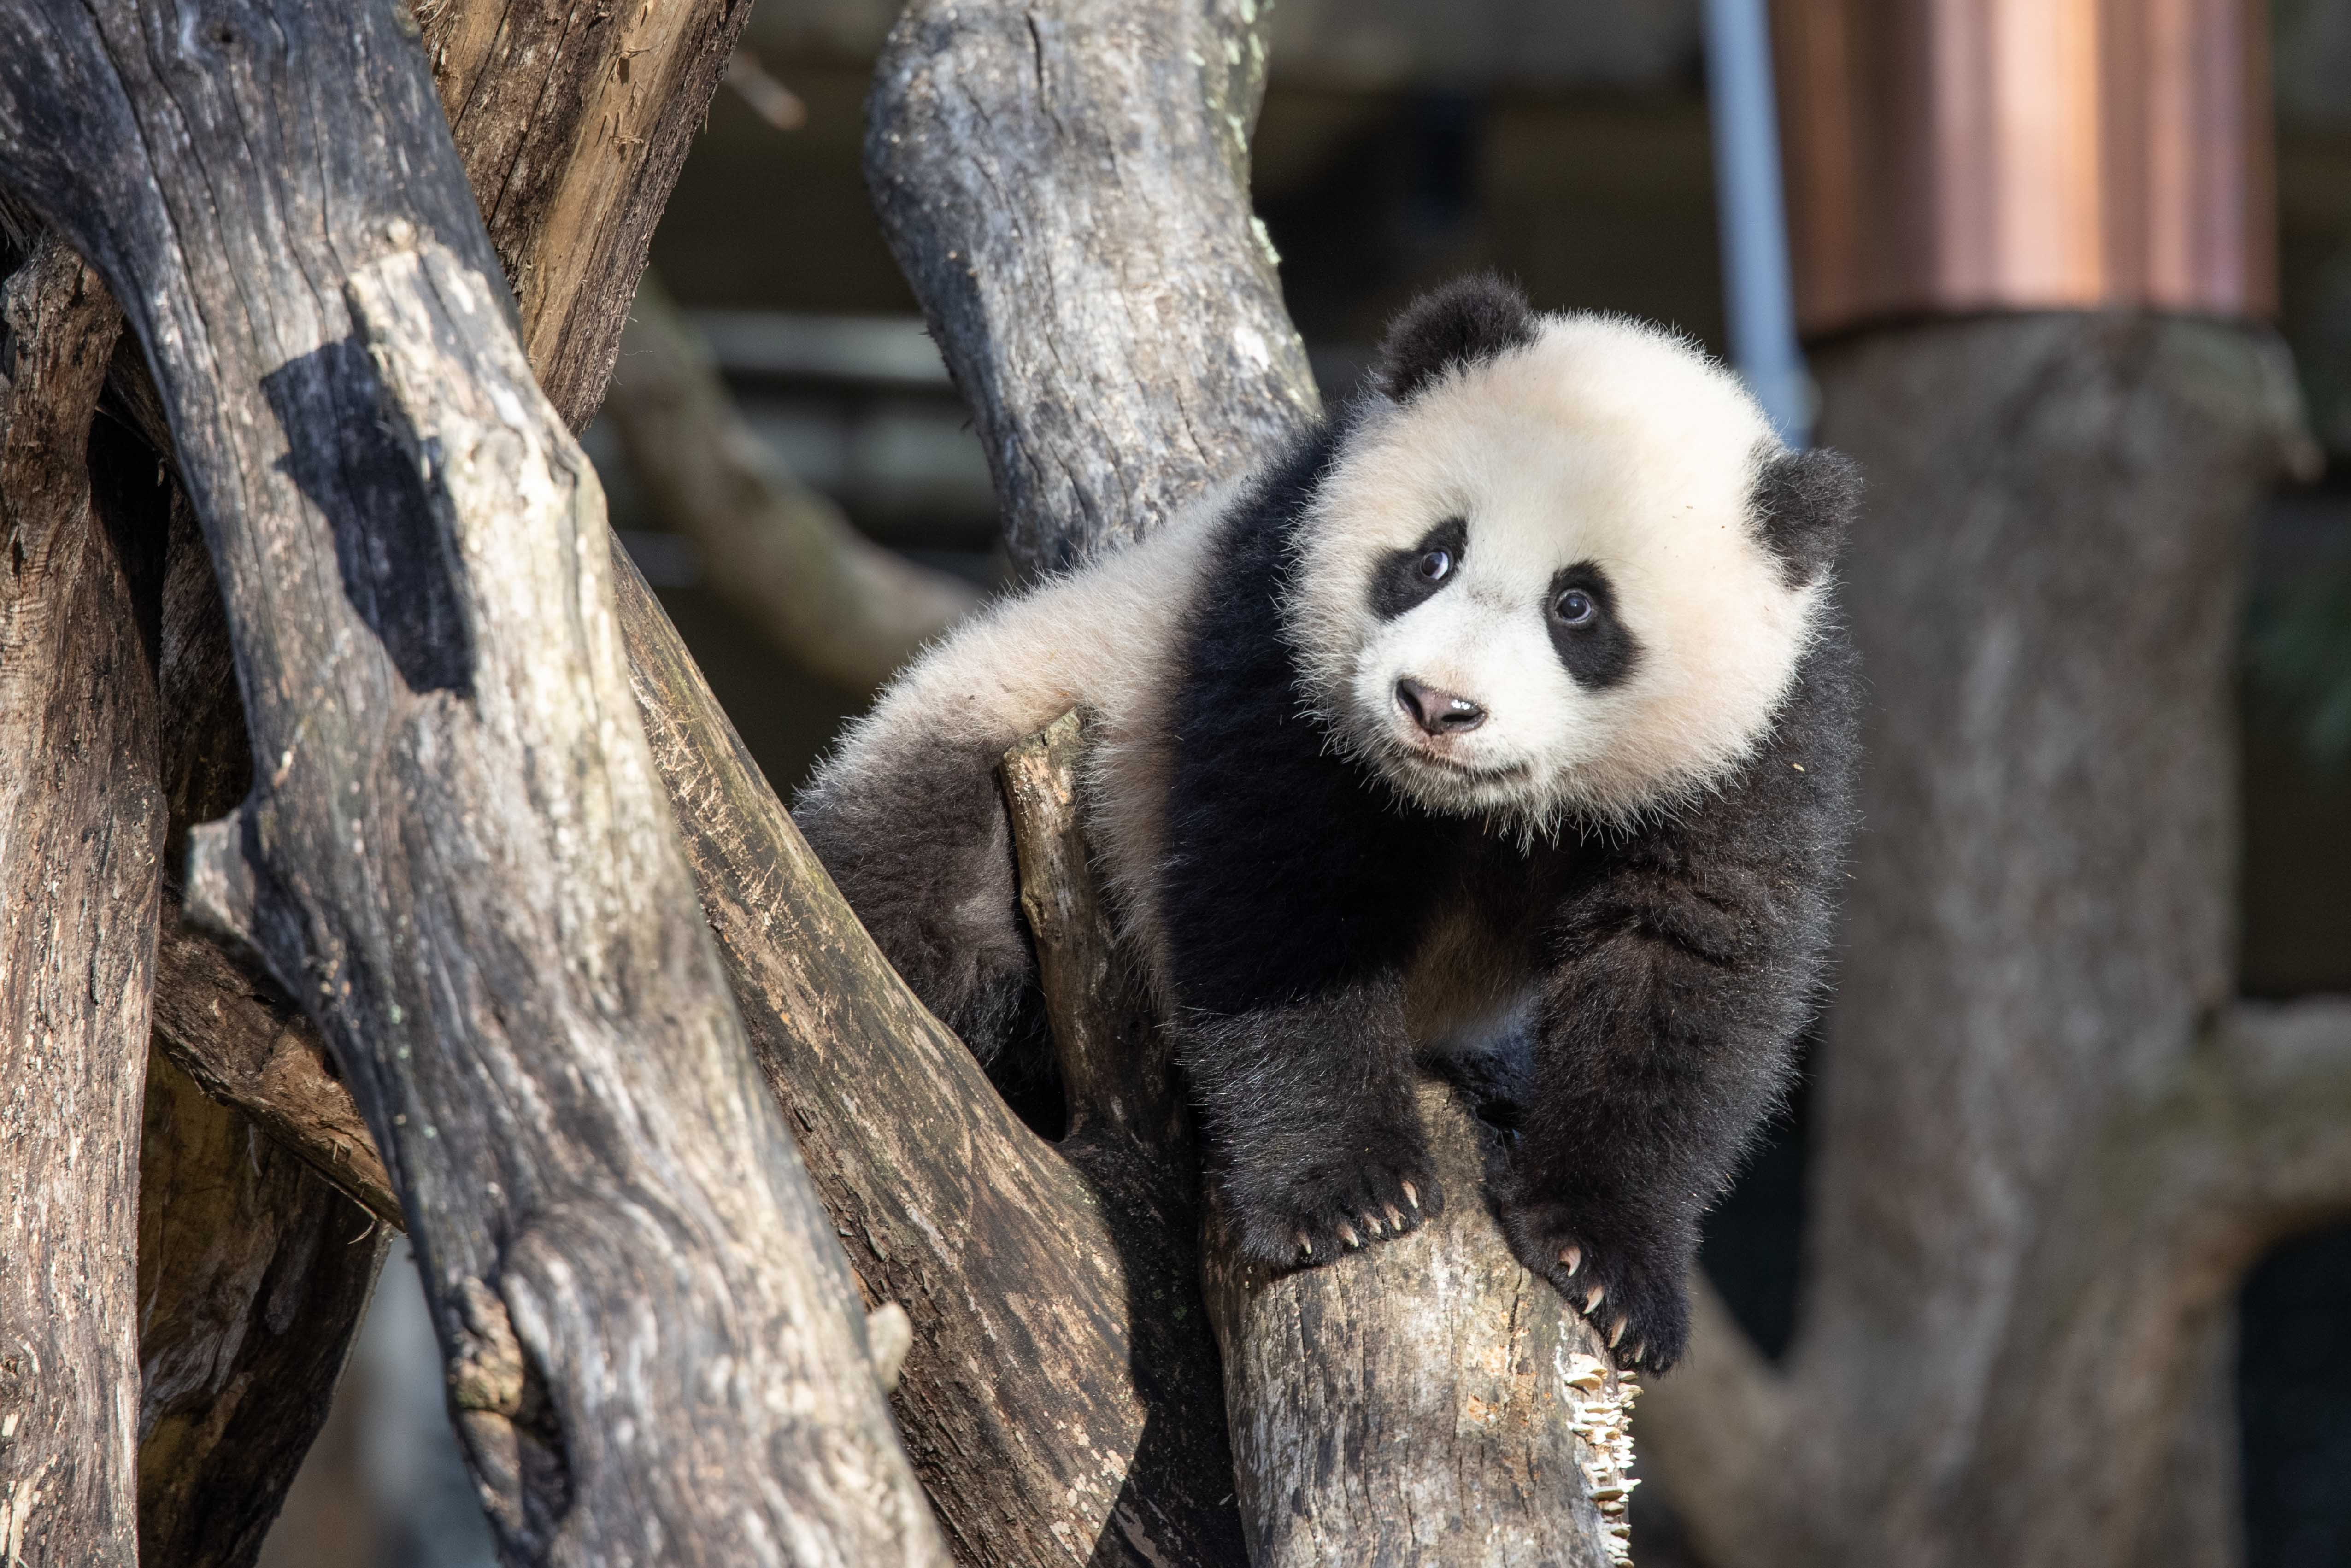 #PandaStory: Adventure Awaits!